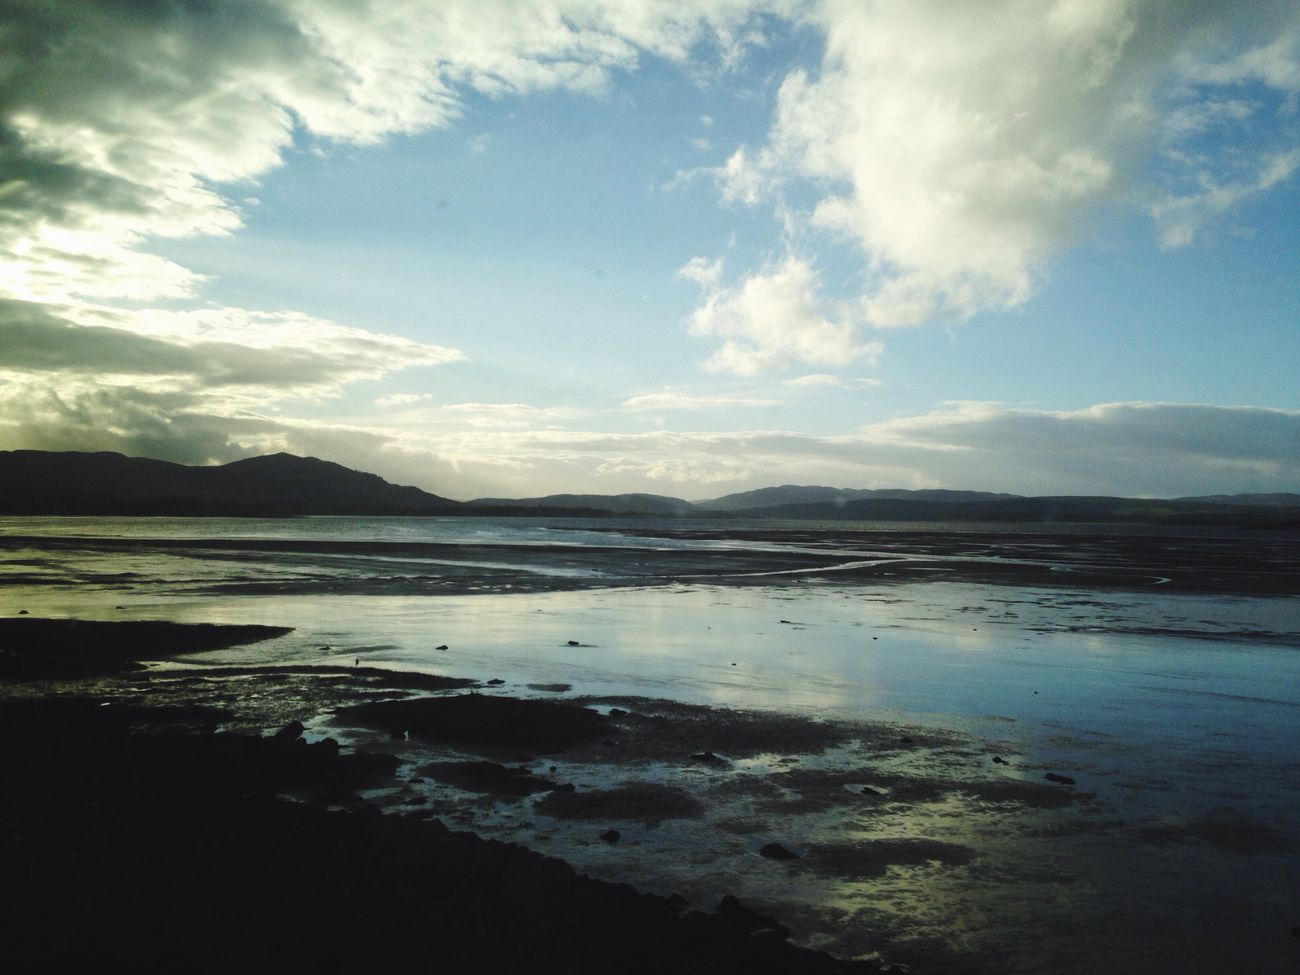 Beauly Firth at sunset, water and sky